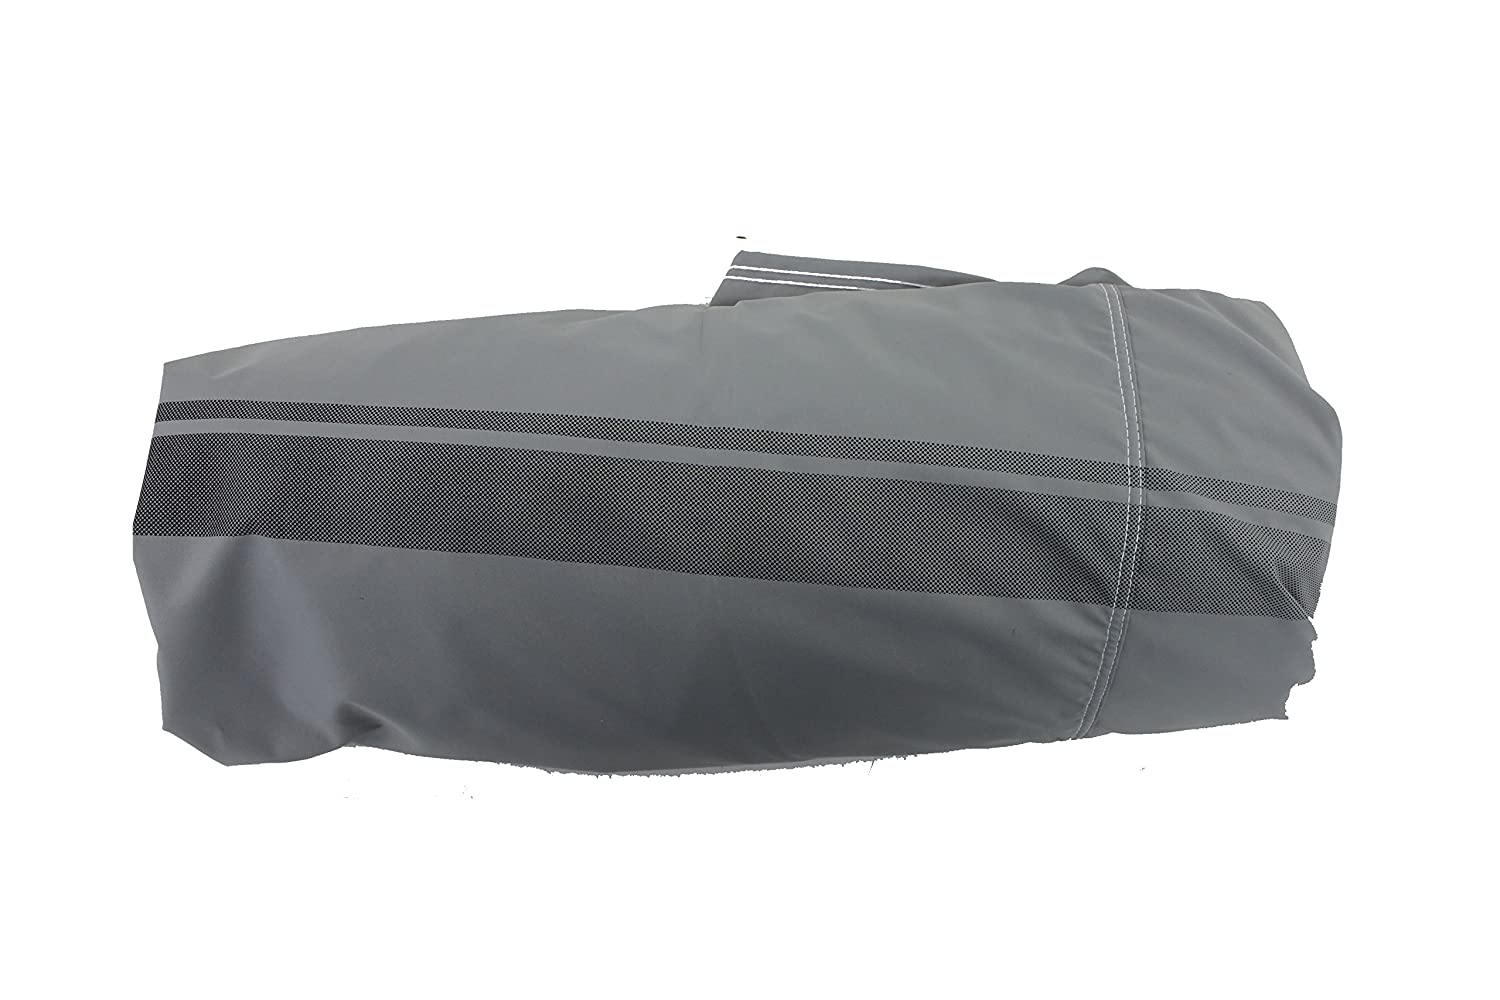 Genuine Ford DR3Z-19A412-B Full Vehicle Cover